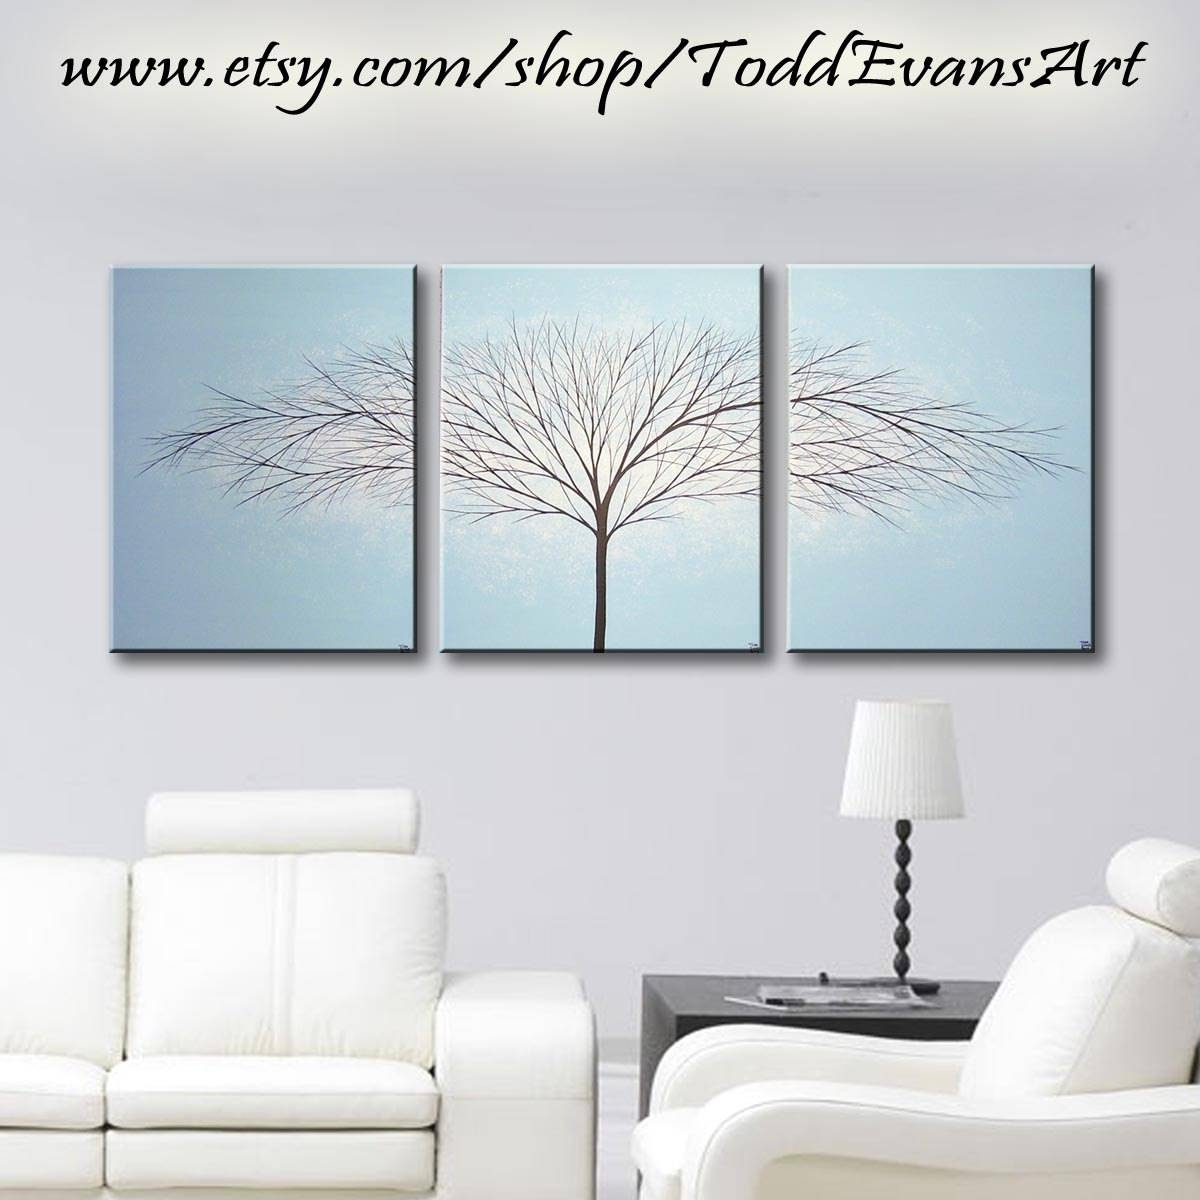 Tree Painting 3 Piece Wall Art Large Canvas Art Painting throughout Most Recently Released 3 Piece Wall Art Sets